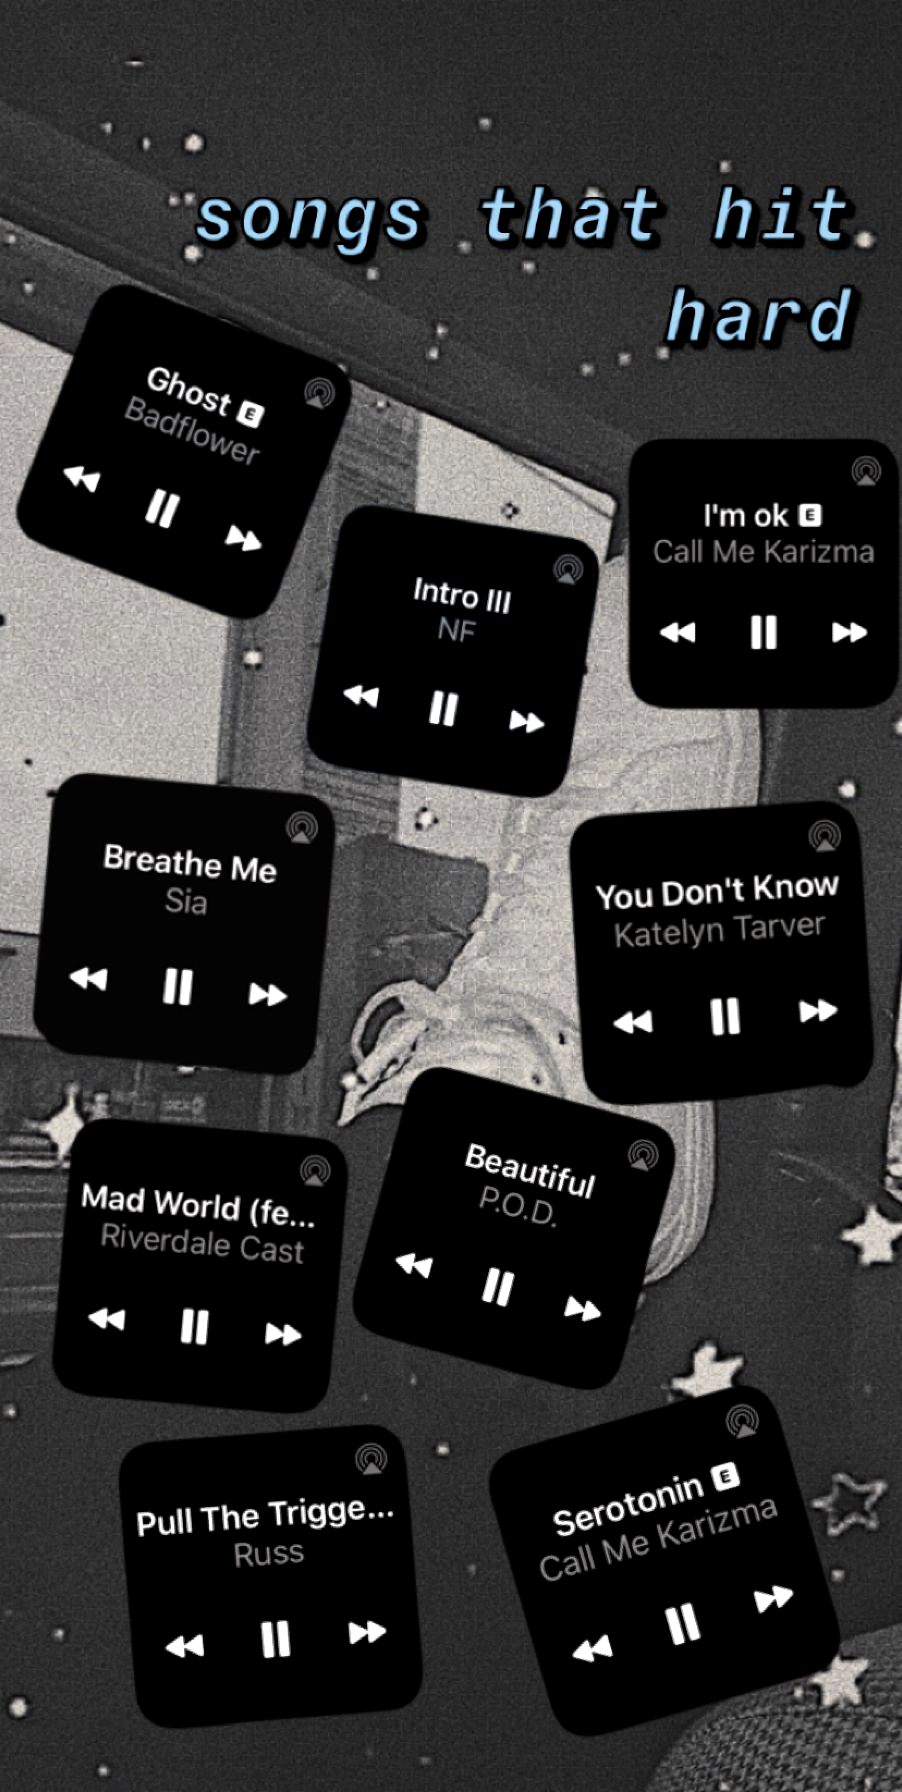 Songs That Hit Me Hard Literature Song Quotes Linda Blog Music Genres Quotes The Happy Have Har Blo Depressing Songs Heartbreak Songs Mood Songs